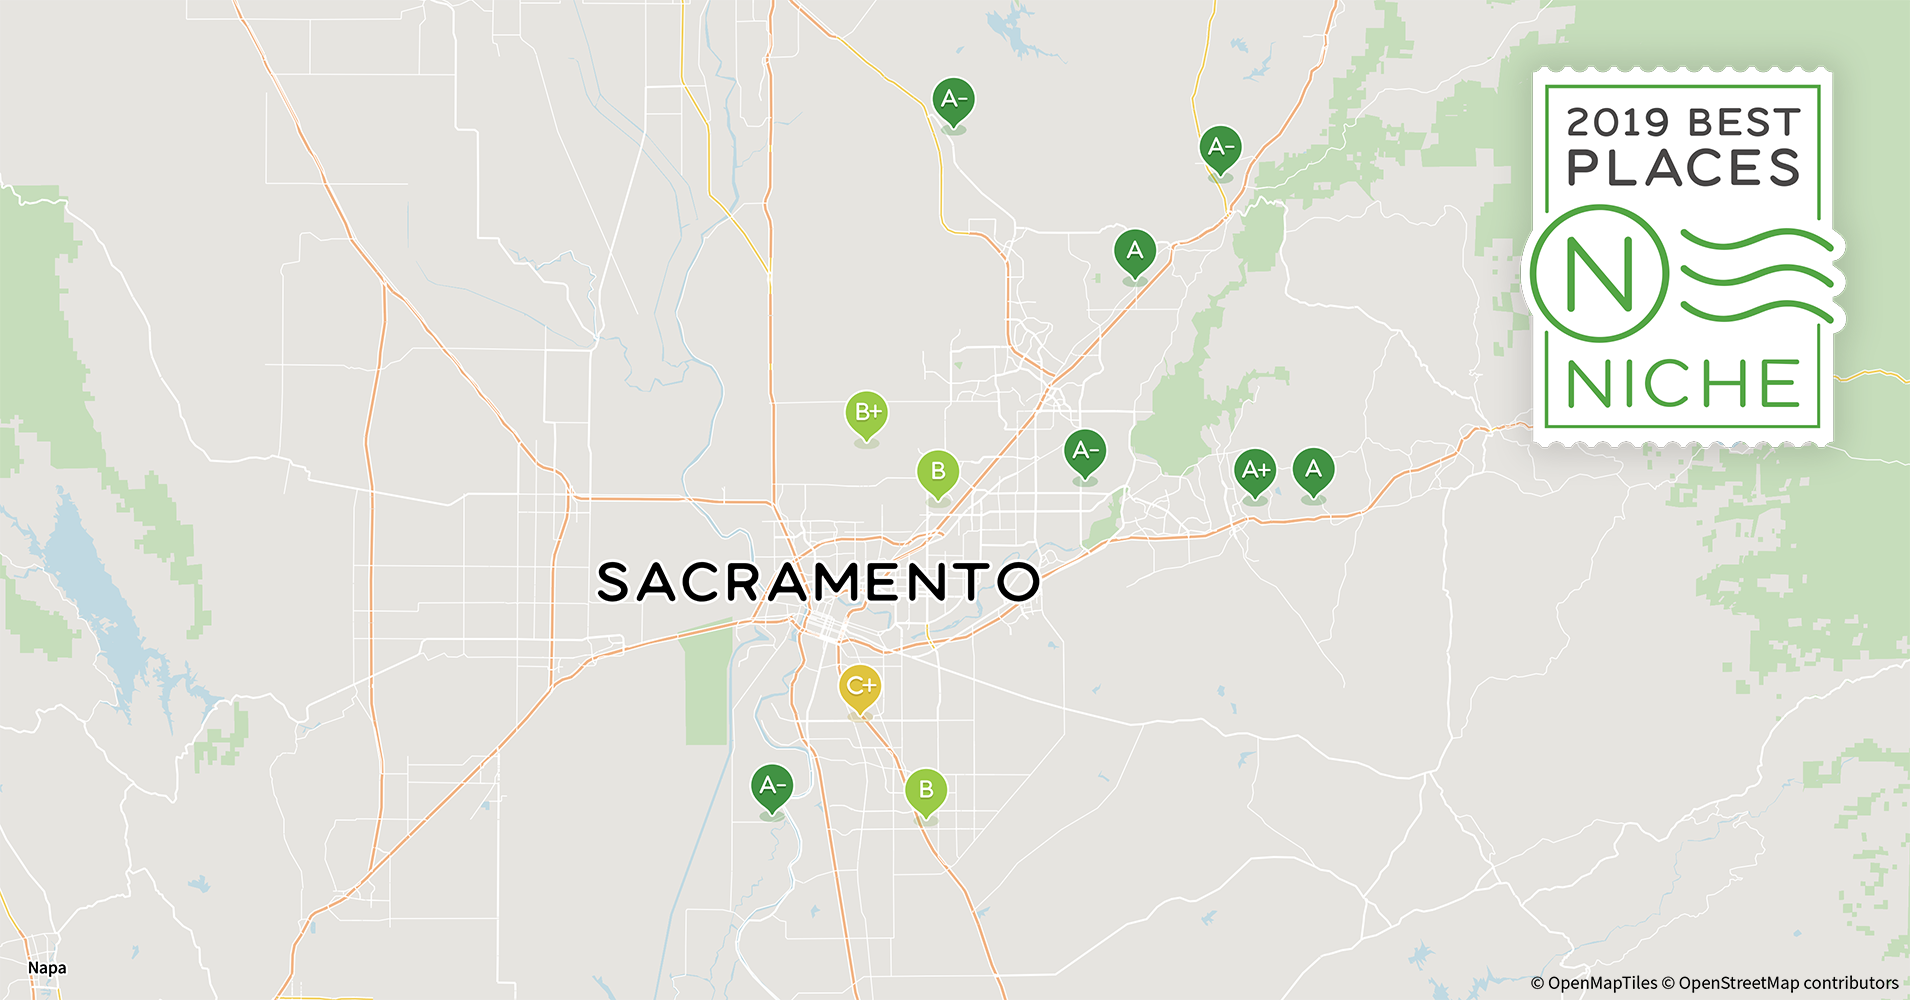 2019 Best Places to Retire in Sacramento Area - Niche Sacramento Gang Map on sacramento ca region map, la street gangs map, sacramento zip codes by street, sacramento on a map, sacramento ghetto, port of sacramento map, bloods and crips la street map, modesto gangs map, sacramento county gangs, sacramento street map, sacramento neighborhoods, cabrillo ca map, sacramento street names, sacramento community map, sacramento old map, sacramento casino map, sacramento police map, sacramento crime map, sacramento fires map, long beach gangs map,